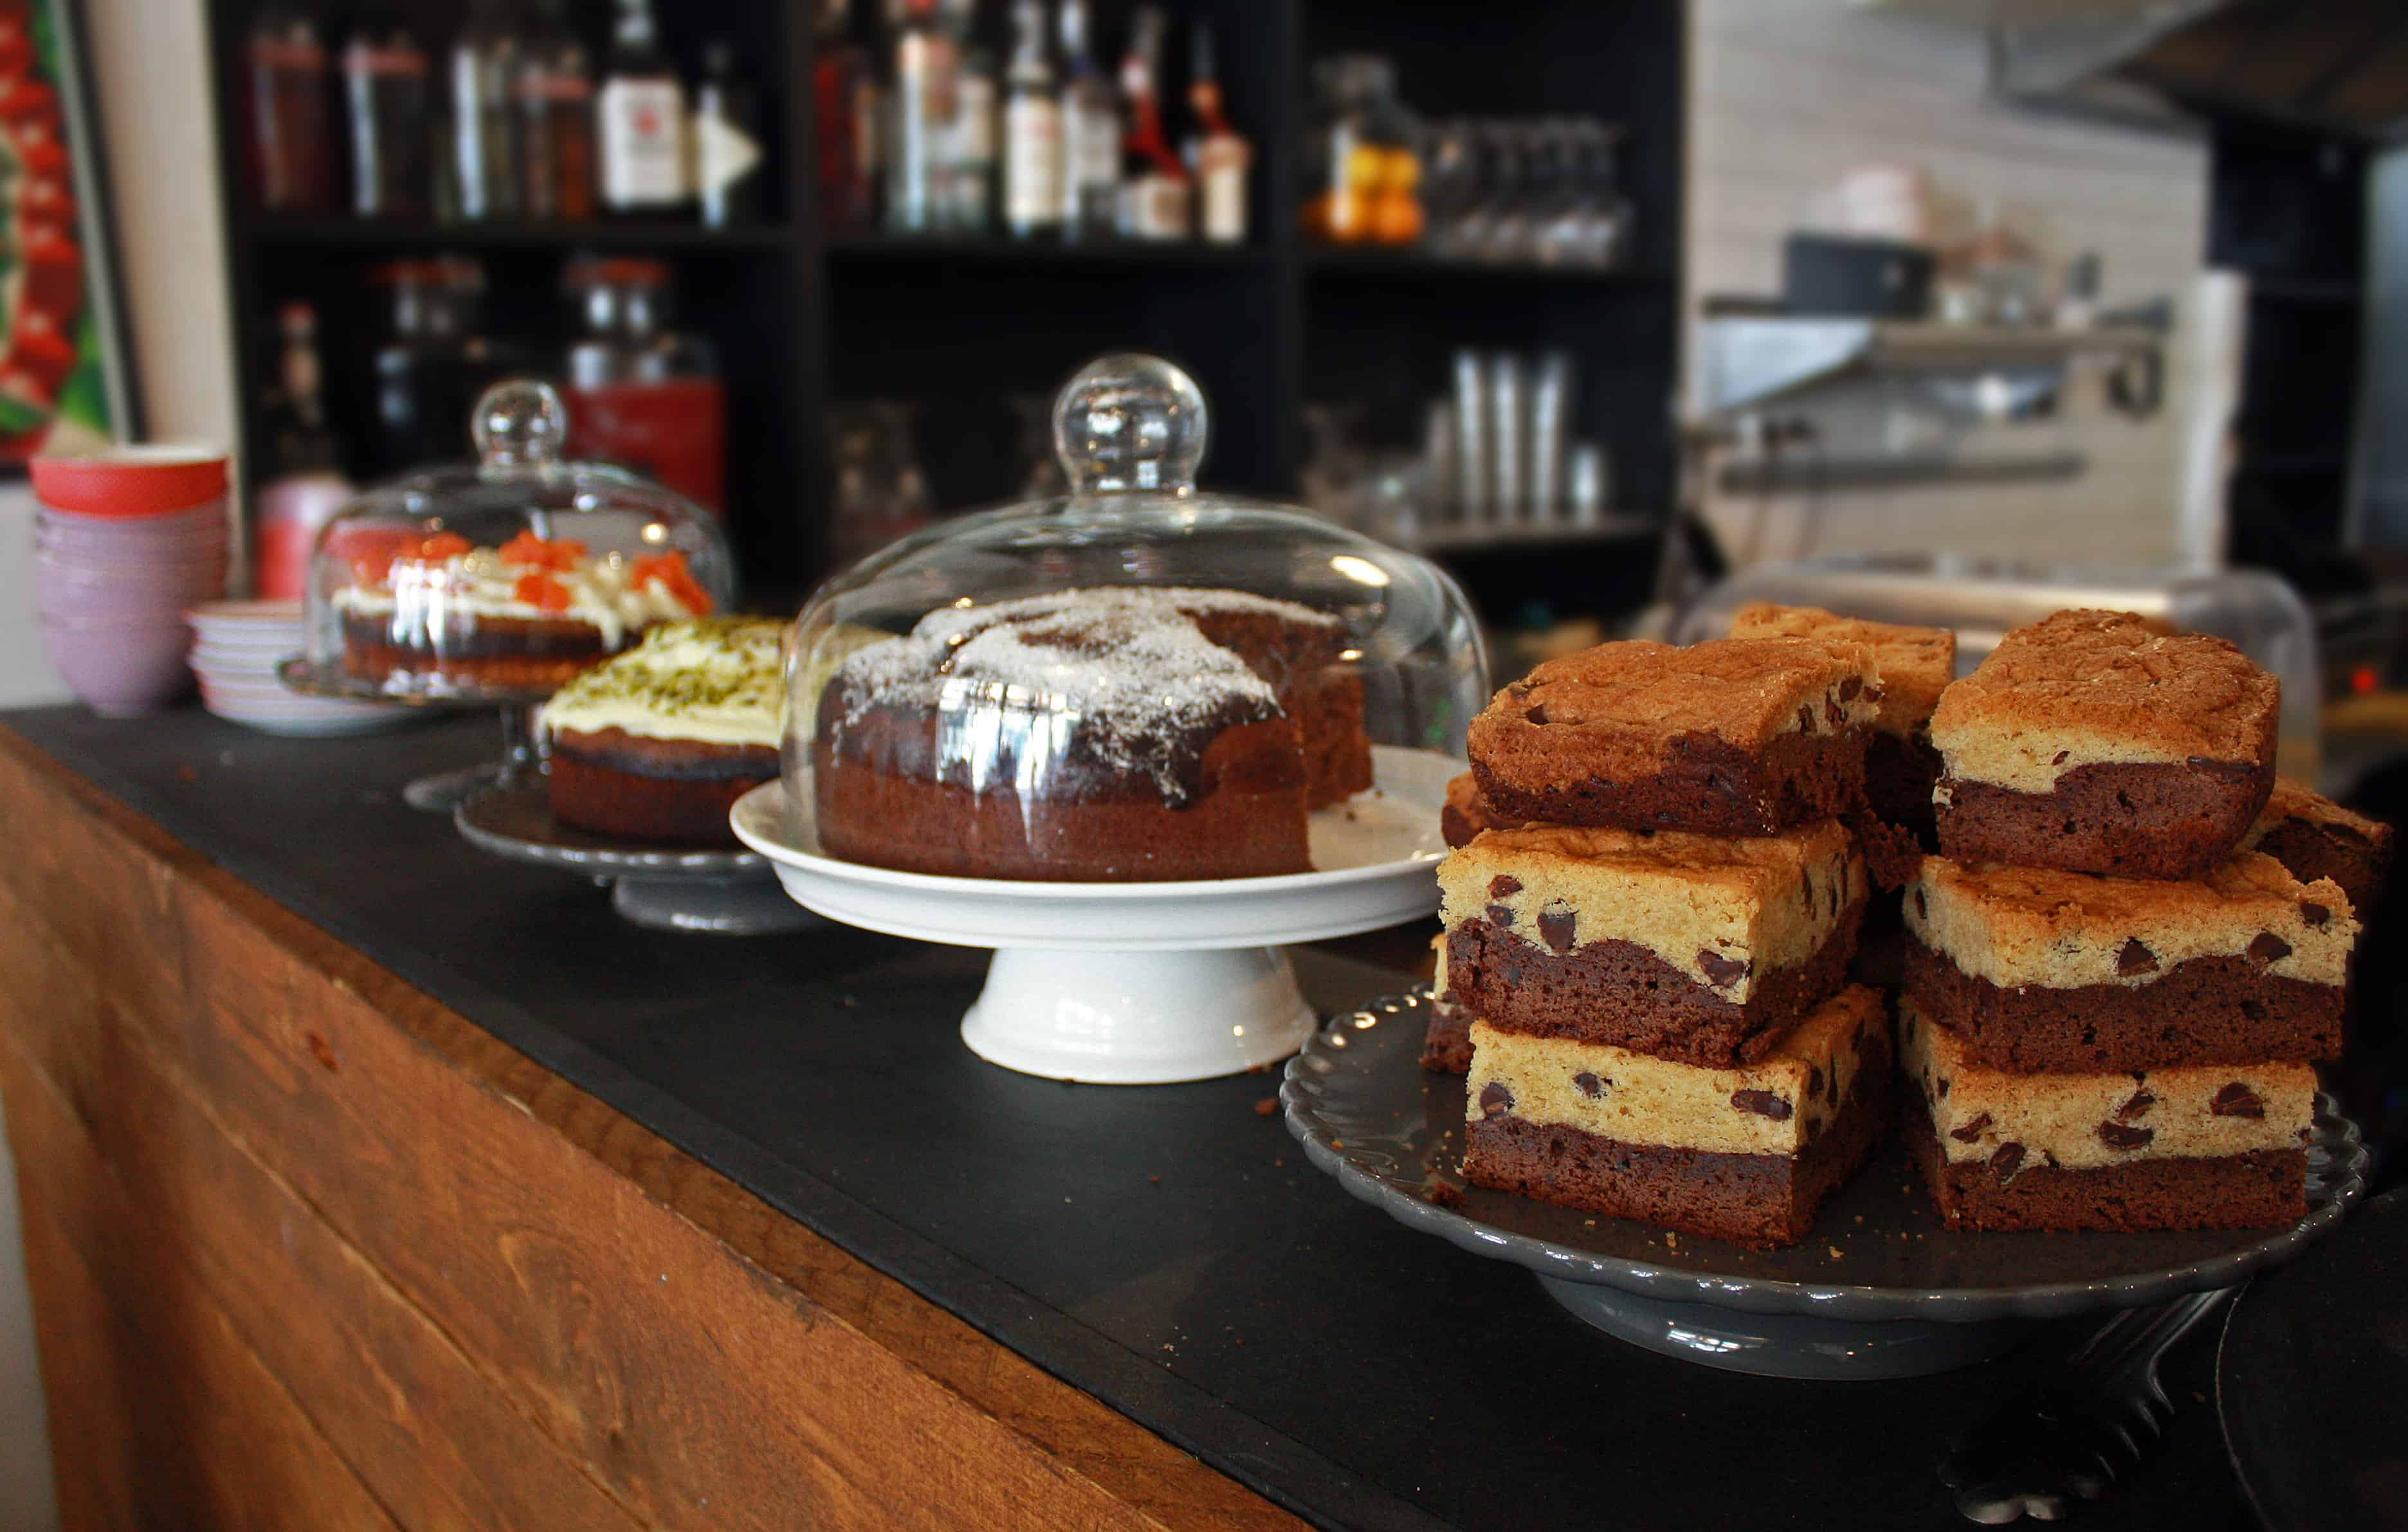 cakes at Peck 47, Brussels